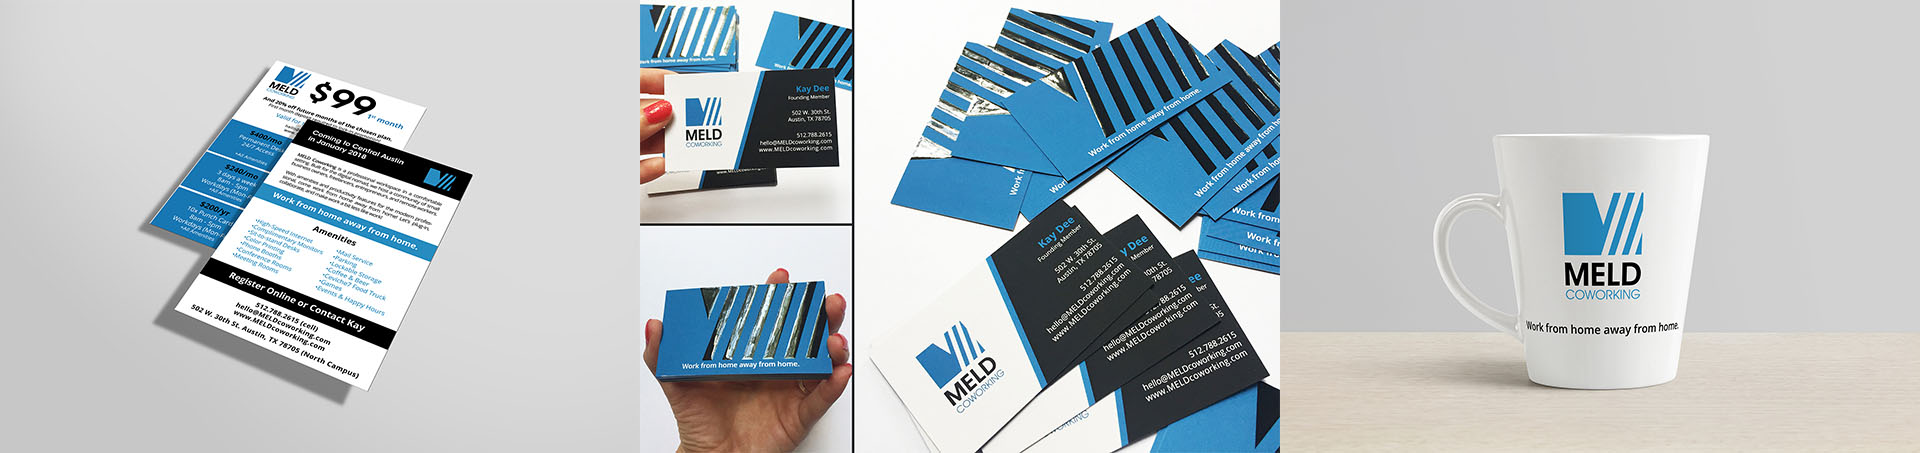 Brand Identity - cup, business cards and flyers